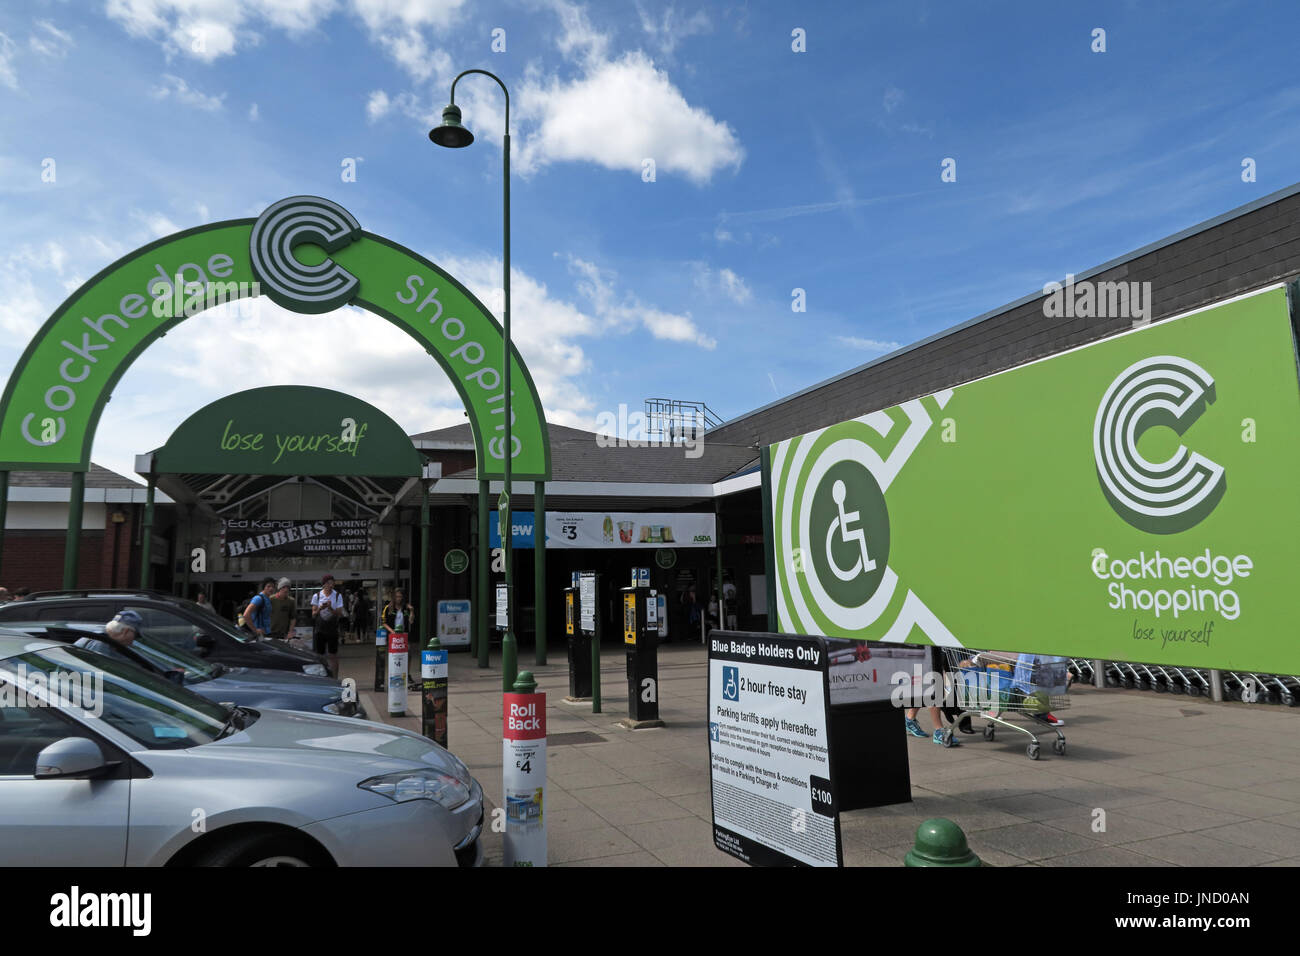 Cockhedge Shopping Centre, Warrington, North West England - Stock Image